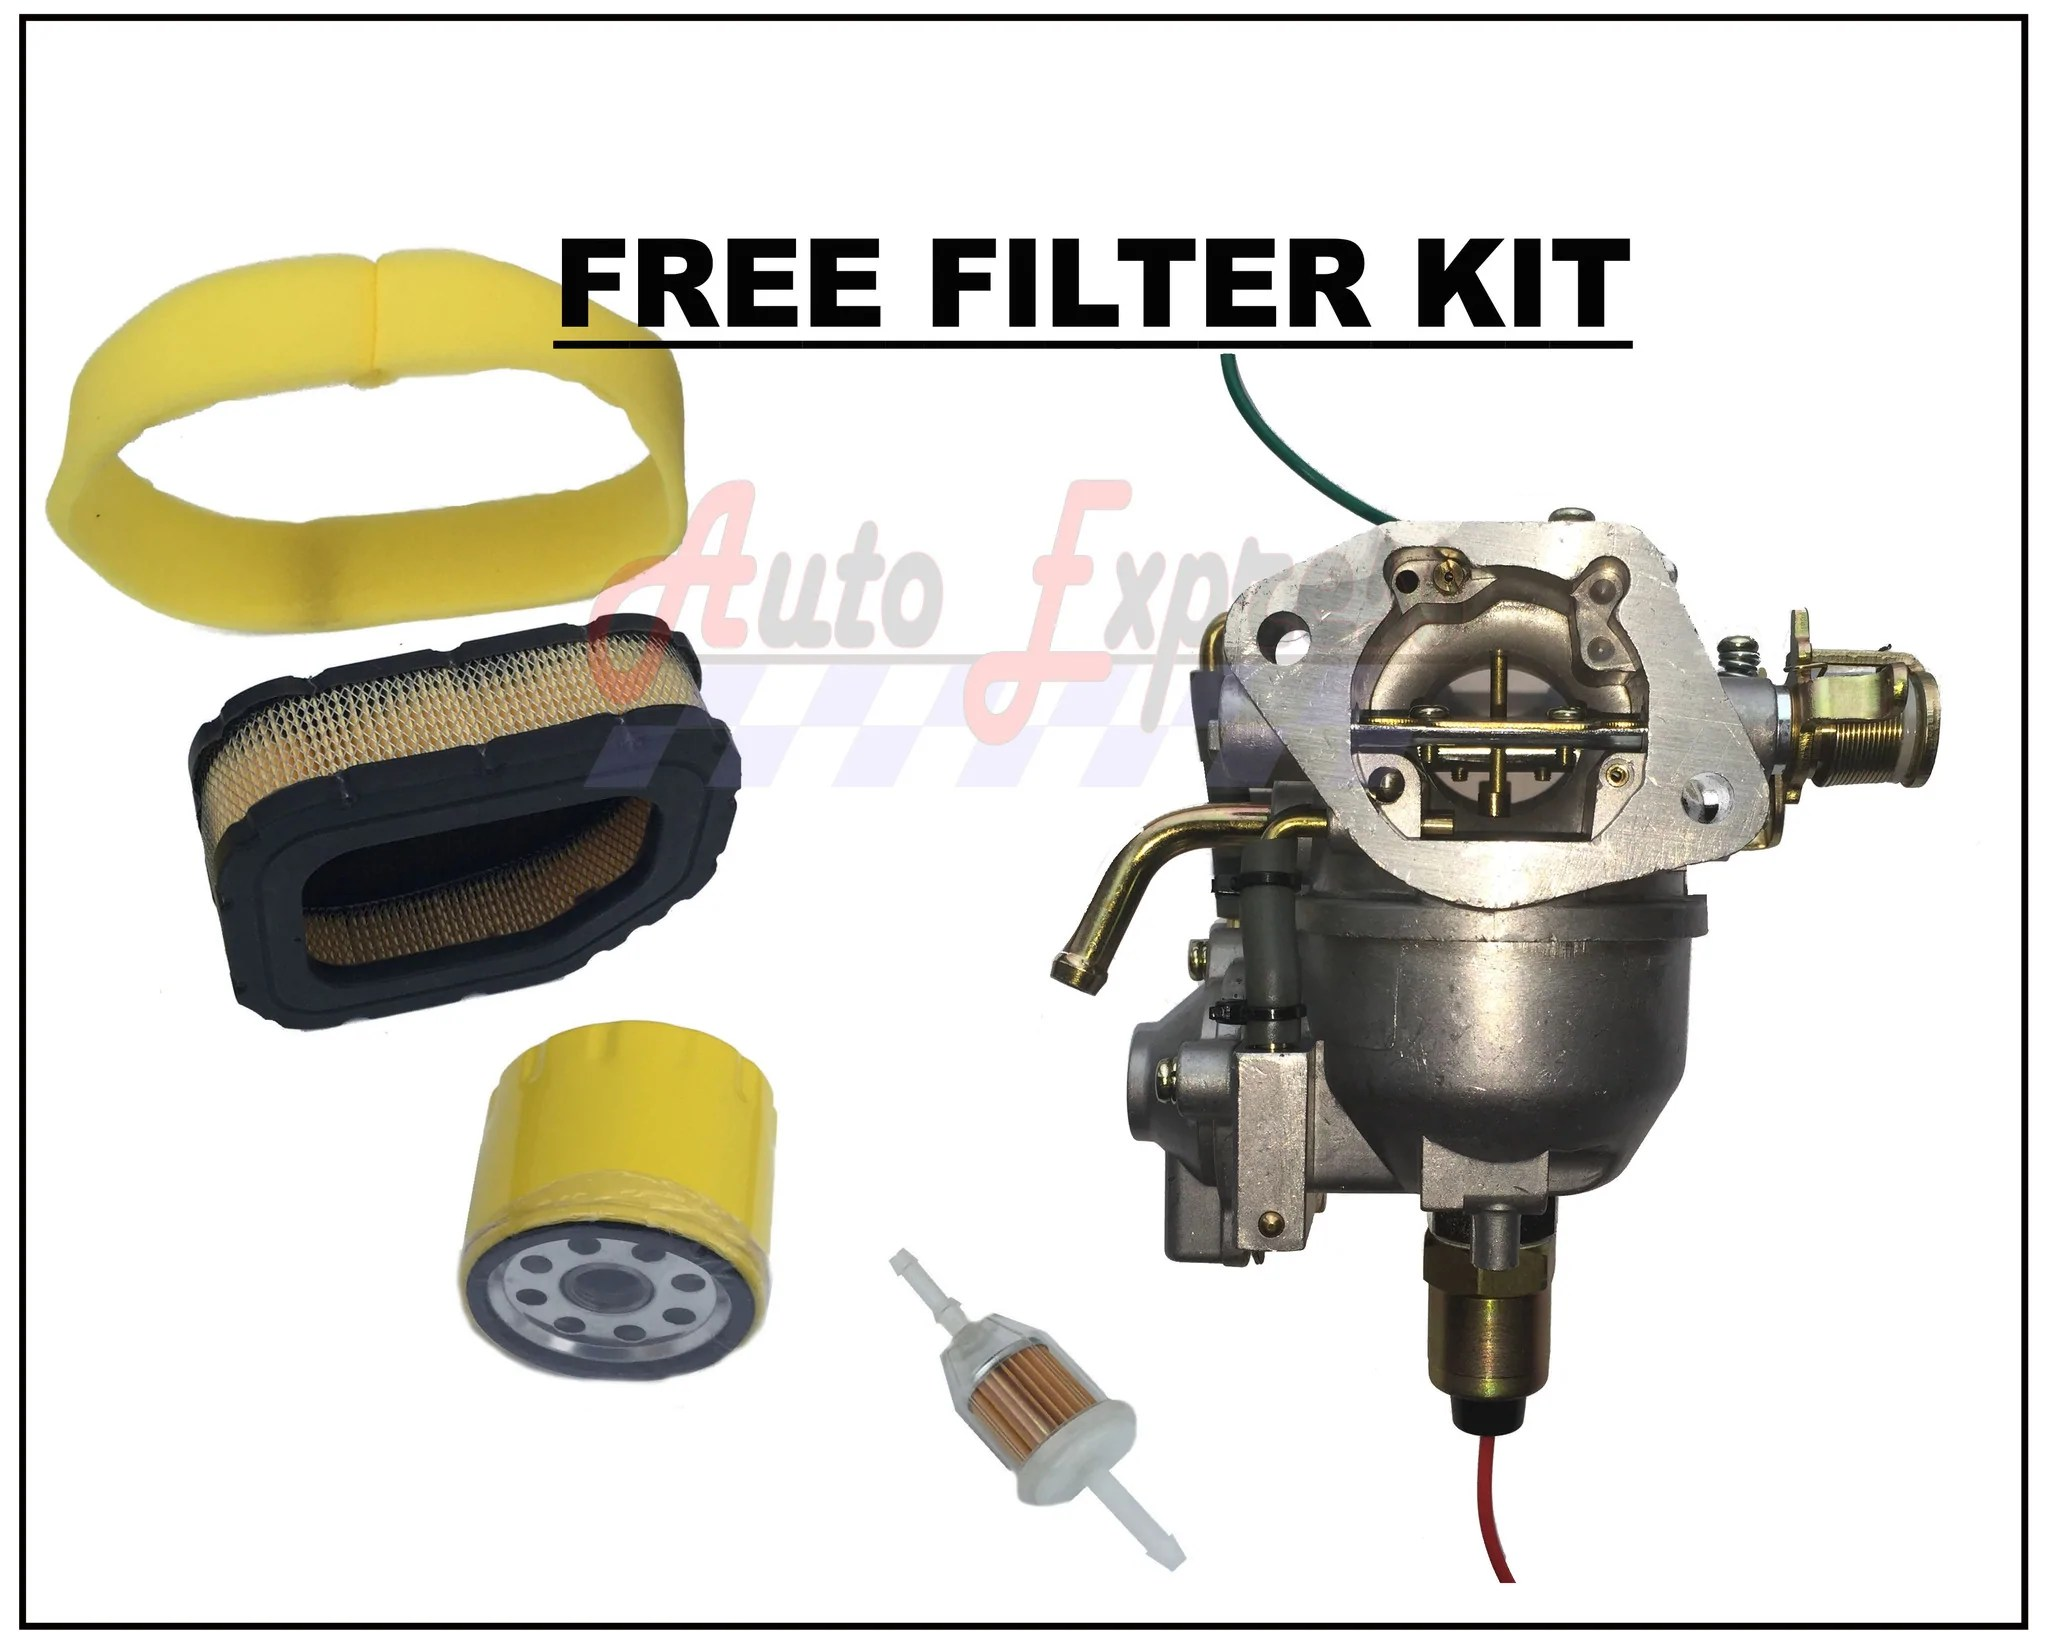 hight resolution of nikki carburetor fits kohler ch18 ch20 carb pump air oil fuel filters